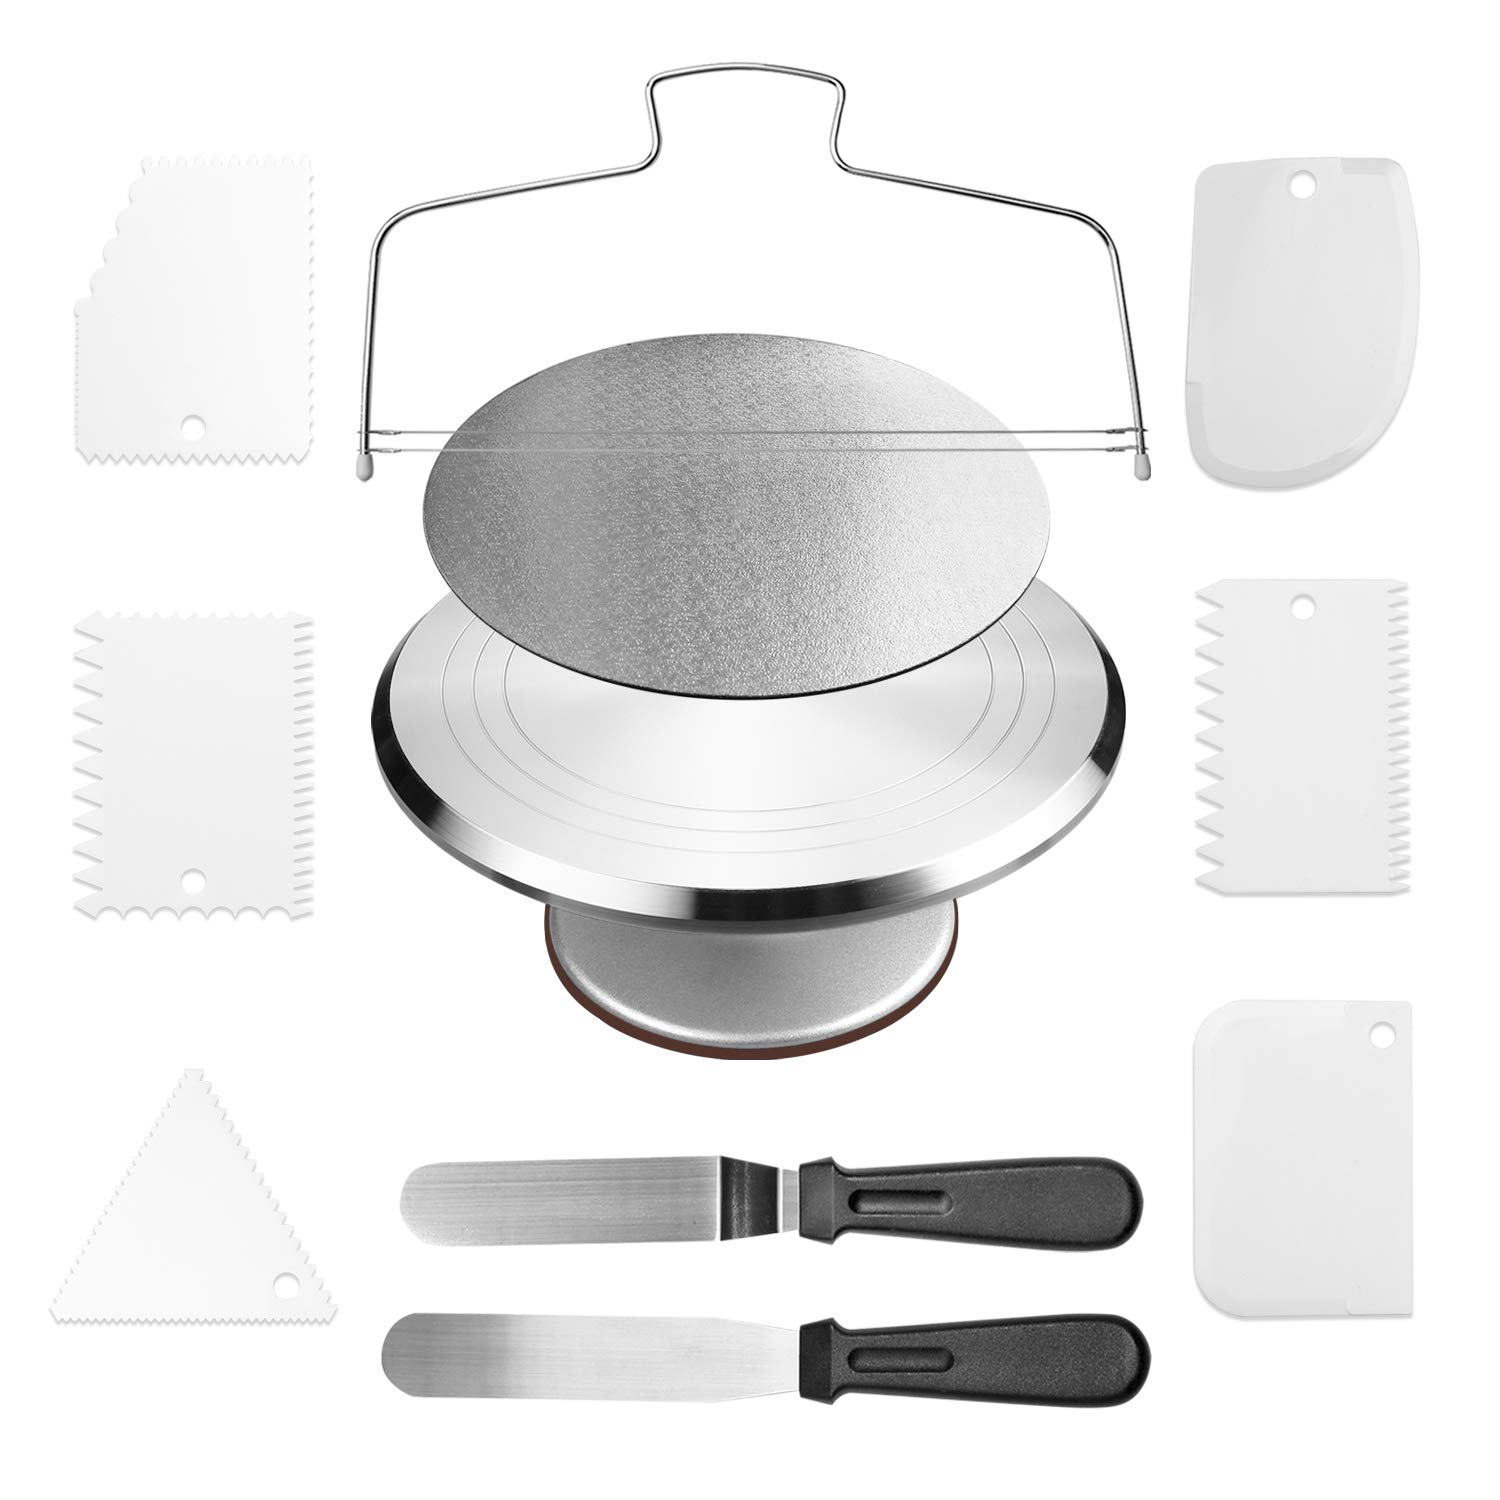 Cake Stand,Aluminium Revolving Cake Turntable 12'' Rotating Cake Decorating Stand with 2 Angled Icing Spatulas and 6 Comb Icing Smoother, Cake leveler,Cake Board